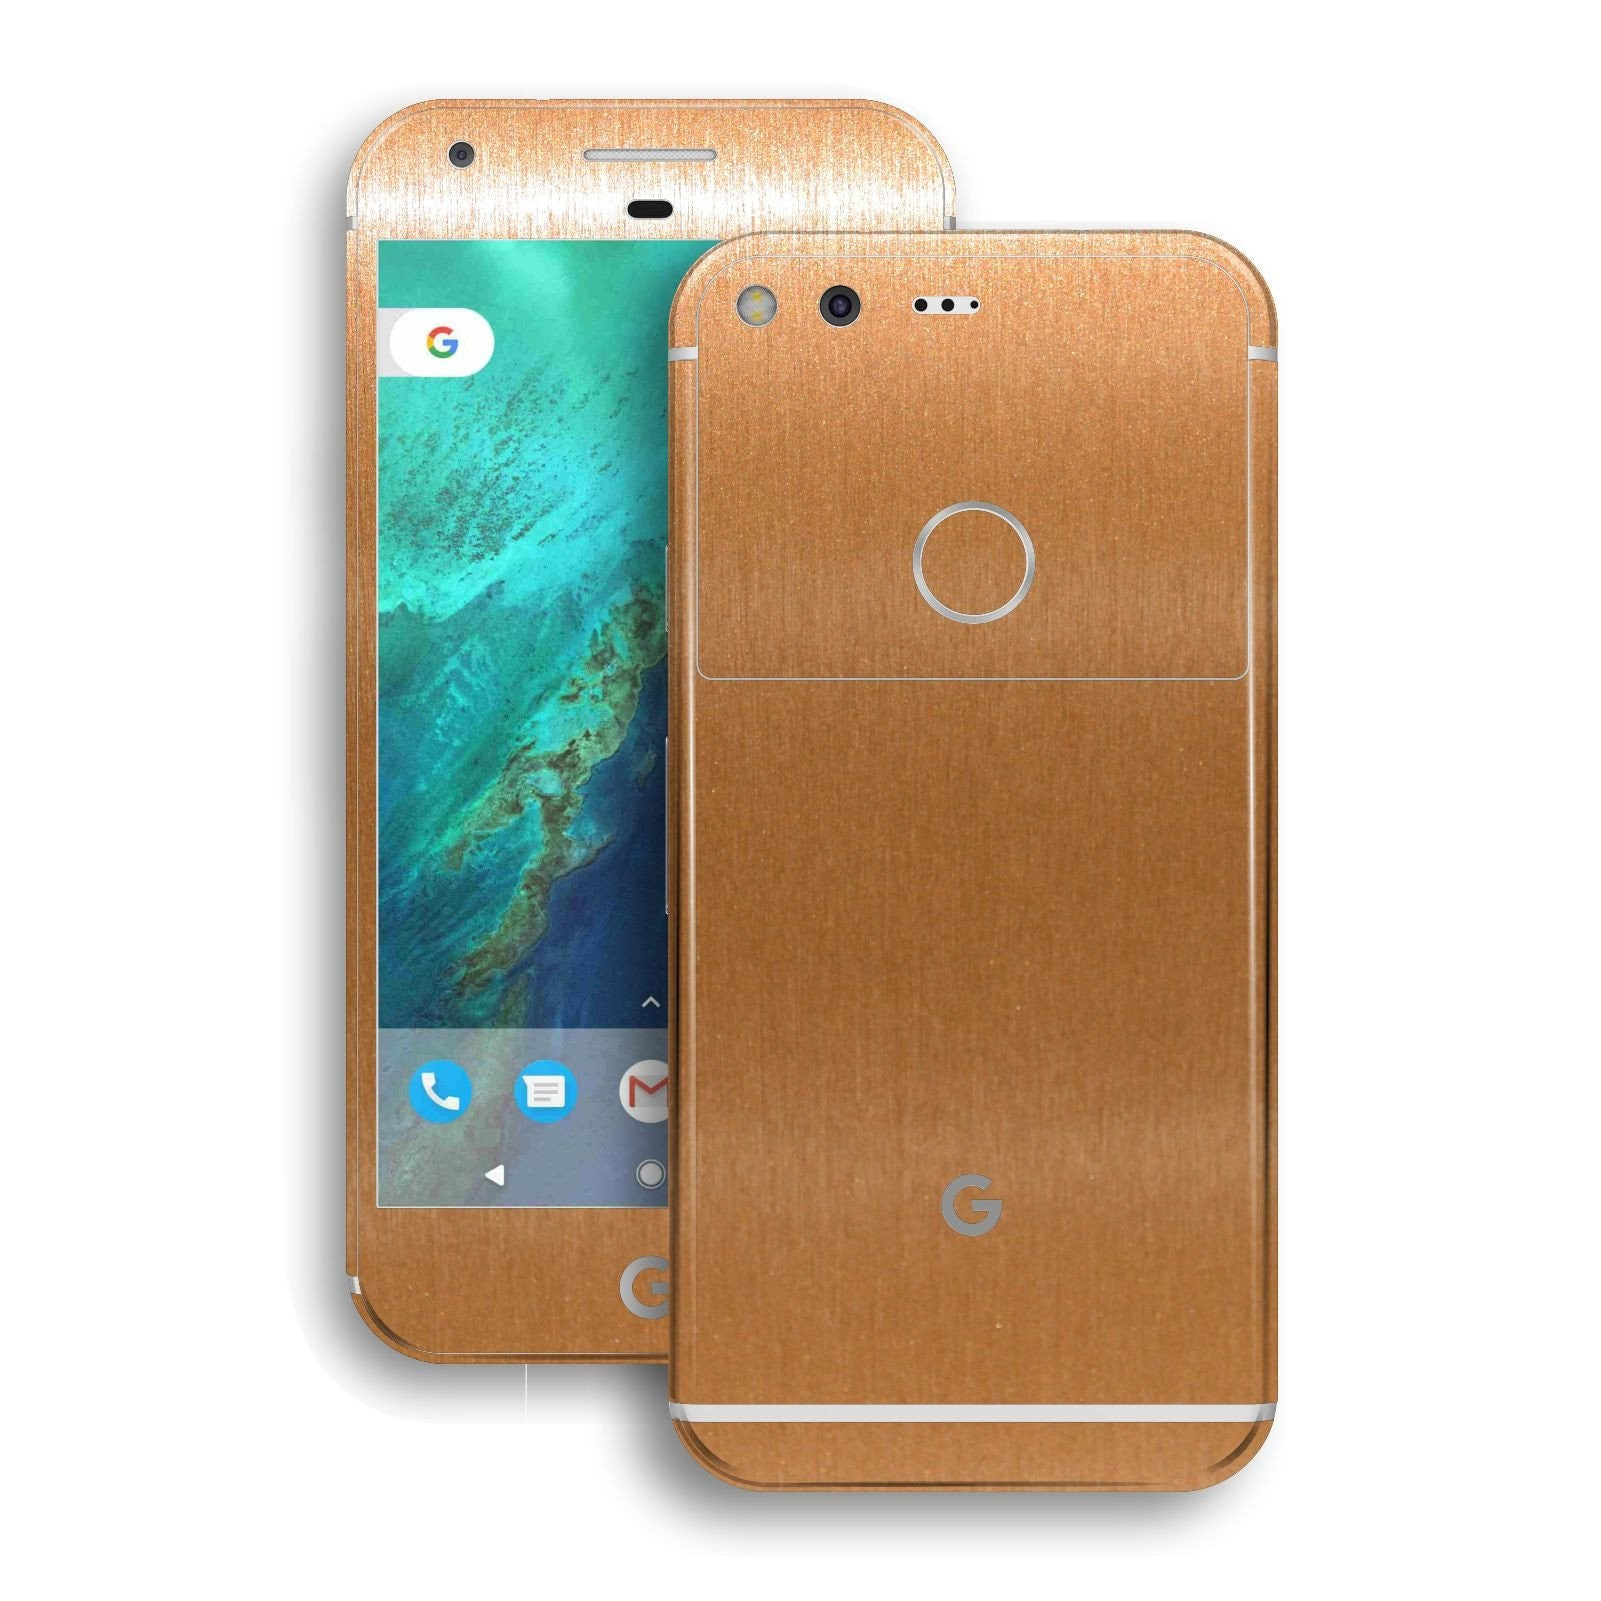 Google Pixel XL Brushed Copper Metallic Metal Skin Wrap Decal by EasySkinz